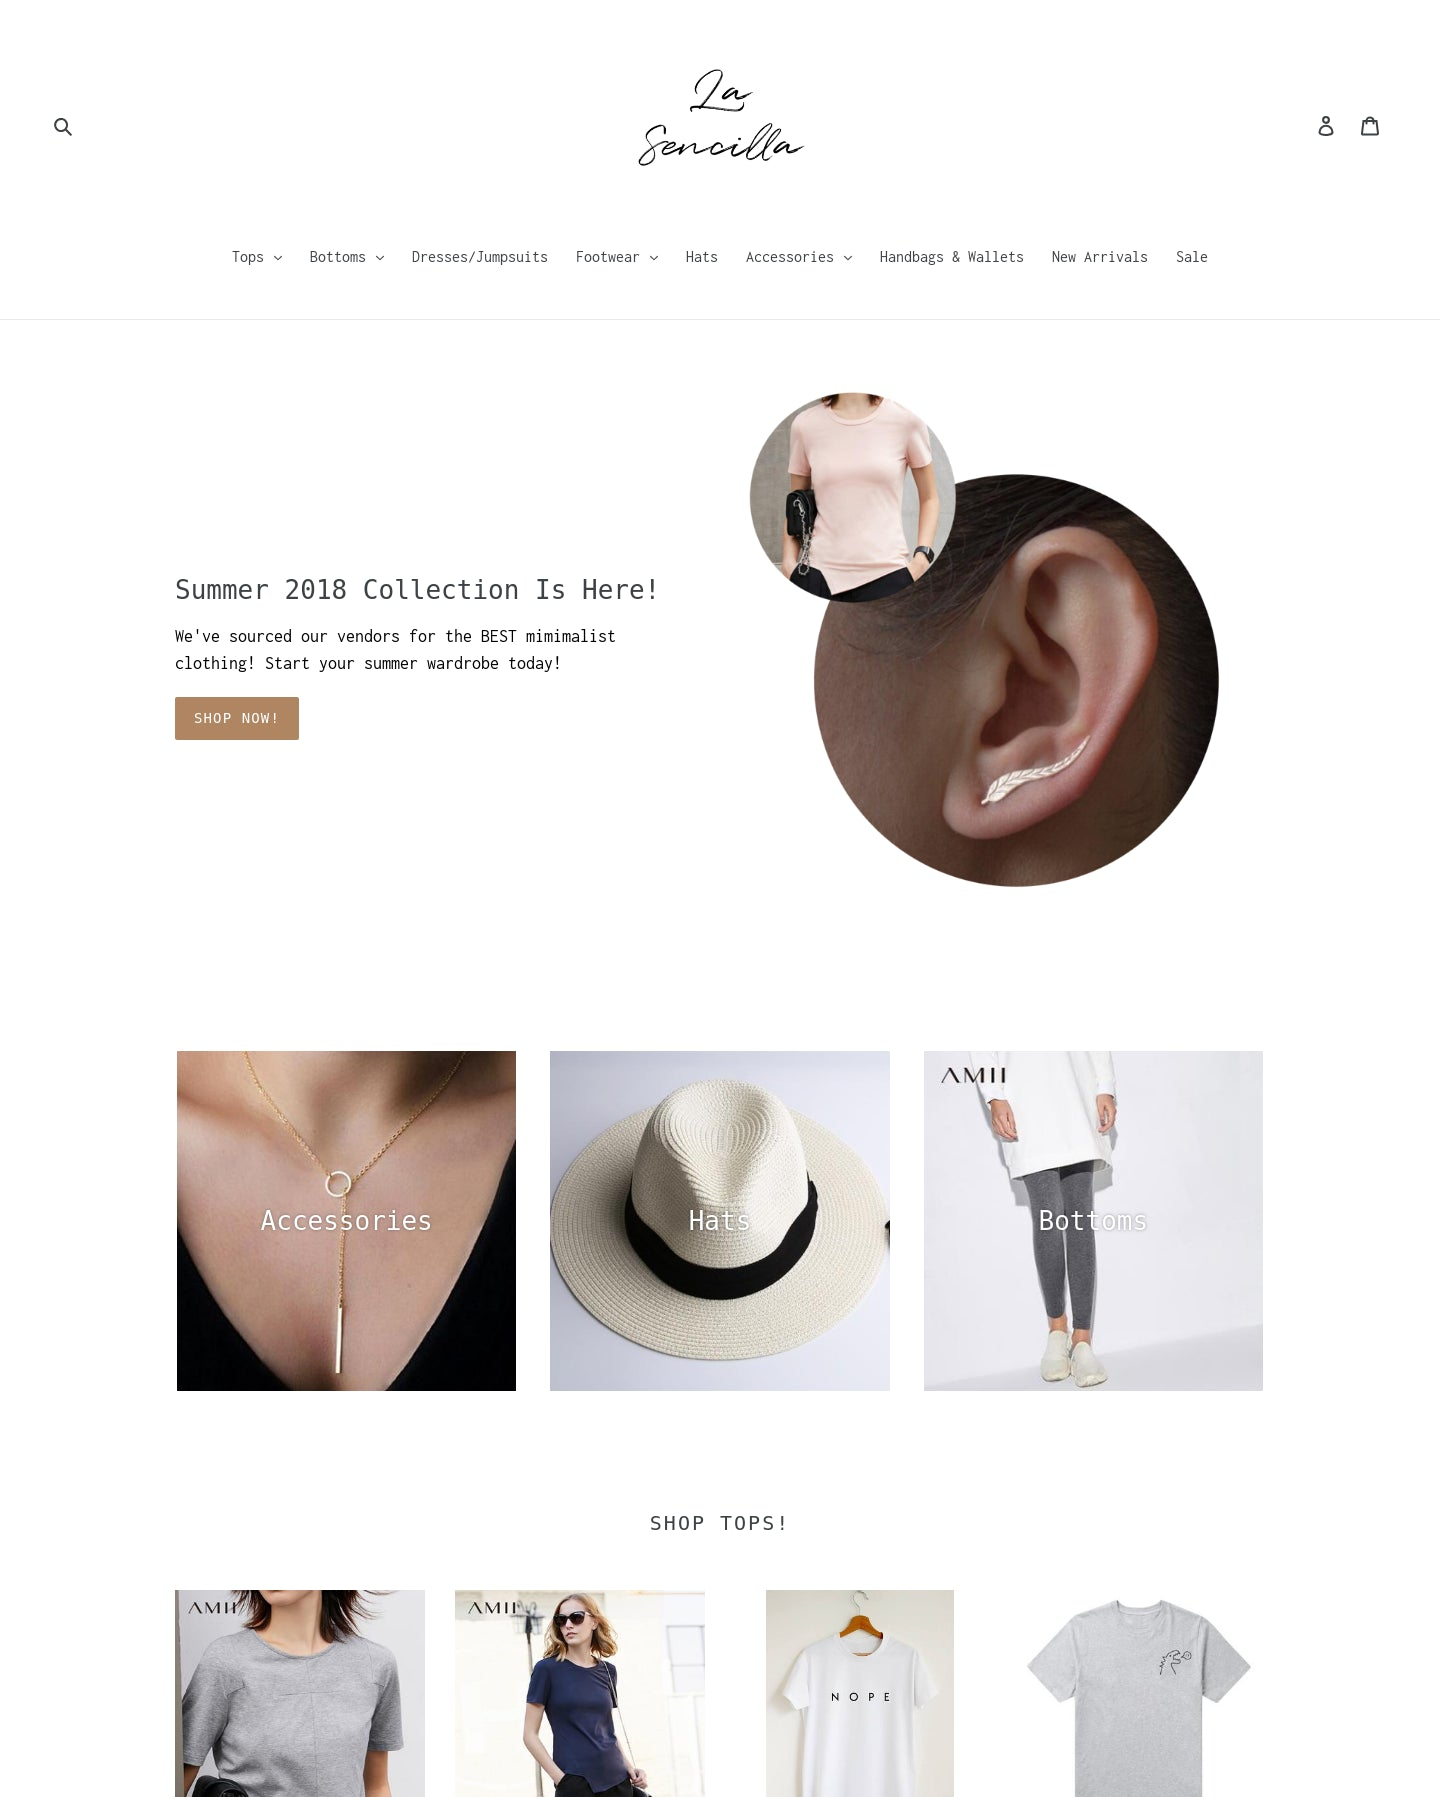 La Sencilla | Women's Fashion, Footwear, & Accessories Screenshot - 1